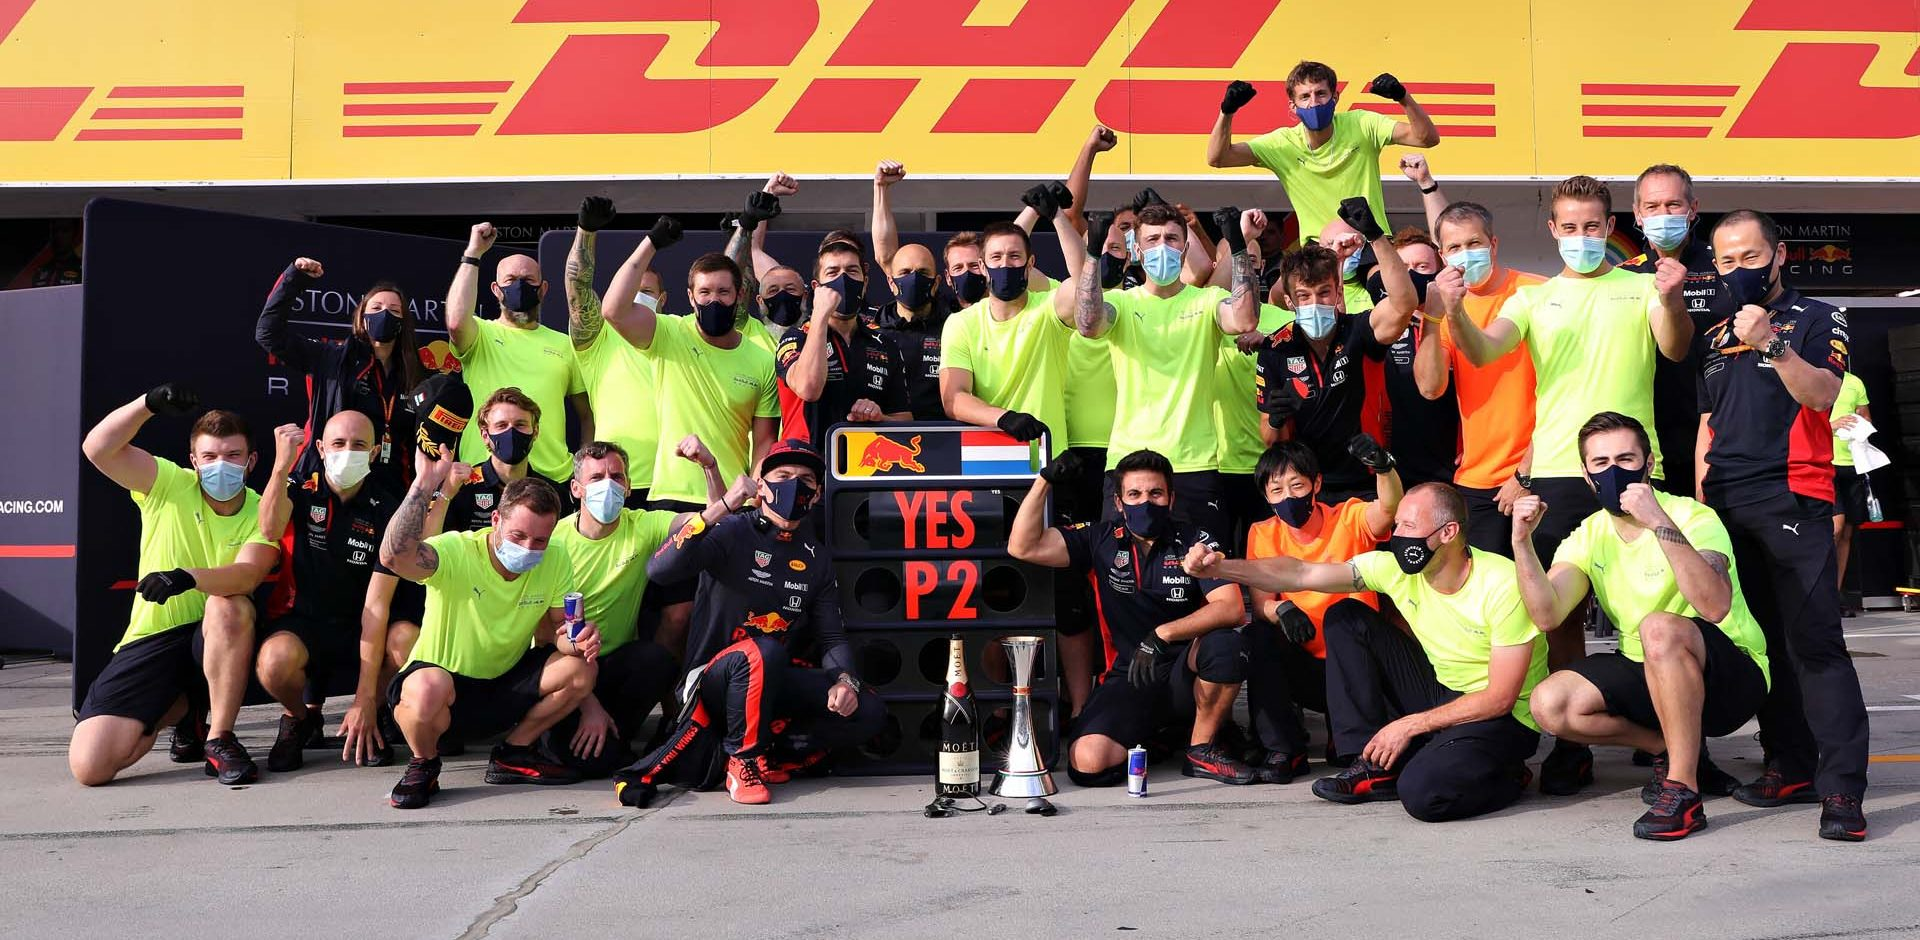 BUDAPEST, HUNGARY - JULY 19: Second placed Max Verstappen of Netherlands and Red Bull Racing celebrates with his team in the Pitlane after the Formula One Grand Prix of Hungary at Hungaroring on July 19, 2020 in Budapest, Hungary. (Photo by Getty Images/Getty Images) // Getty Images / Red Bull Content Pool  // AP-24P7VG8G12111 // Usage for editorial use only //